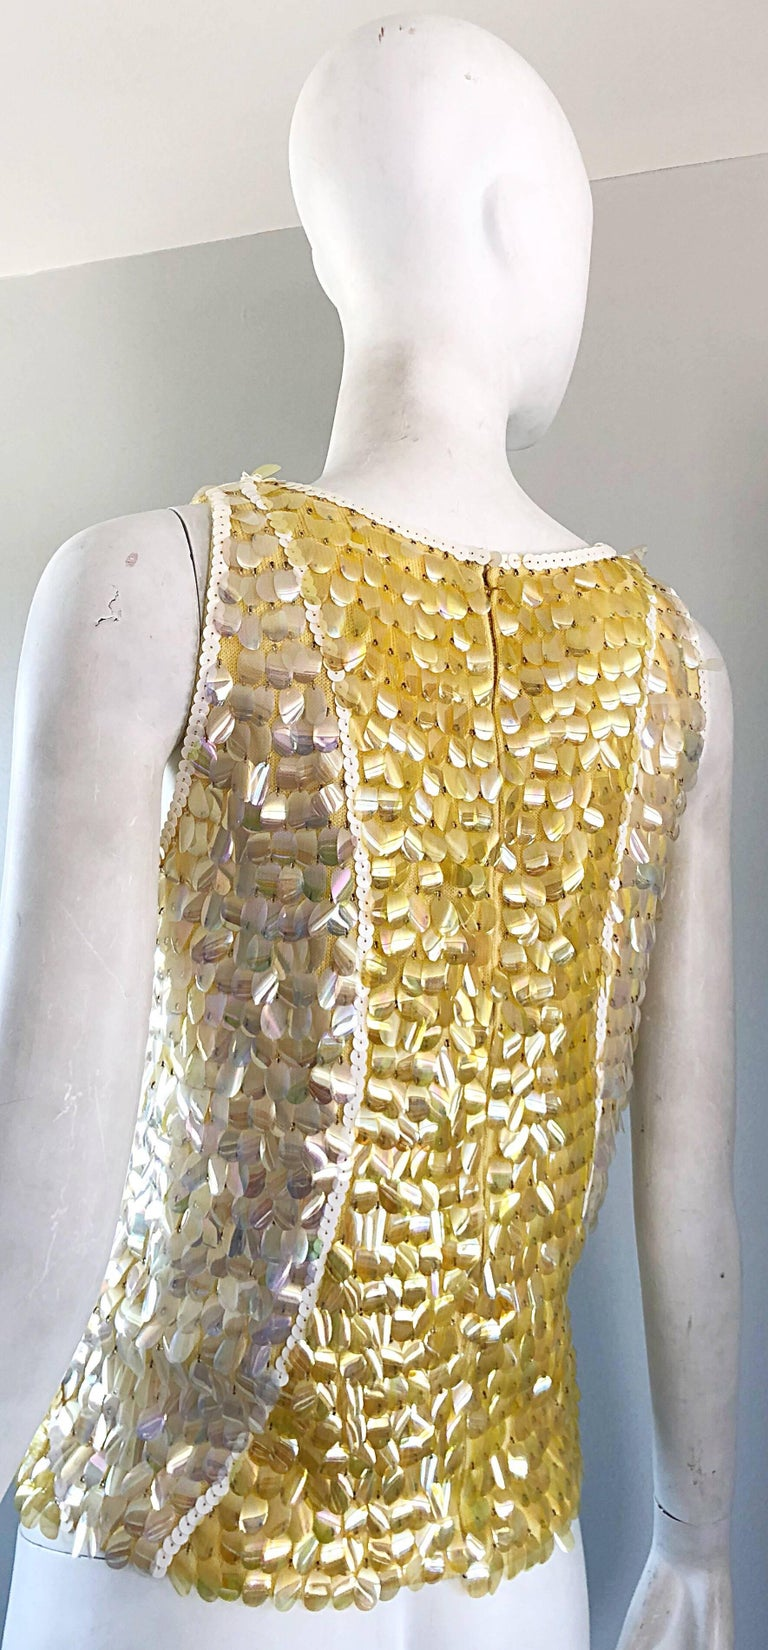 1960s Yellow + White + Clear Paillettes Sequined Lamb's Wool Sleeveless 60s Top For Sale 3